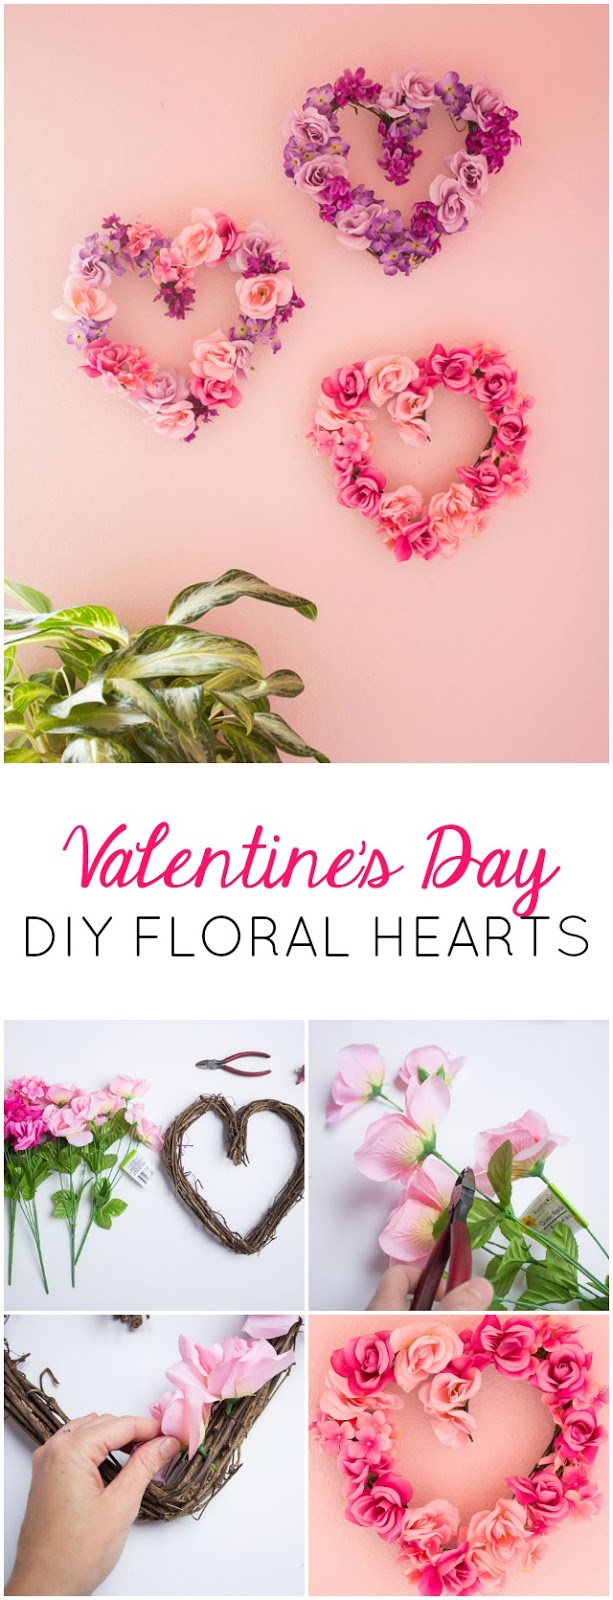 Make these beautiful floral hearts from dollar store flowers!